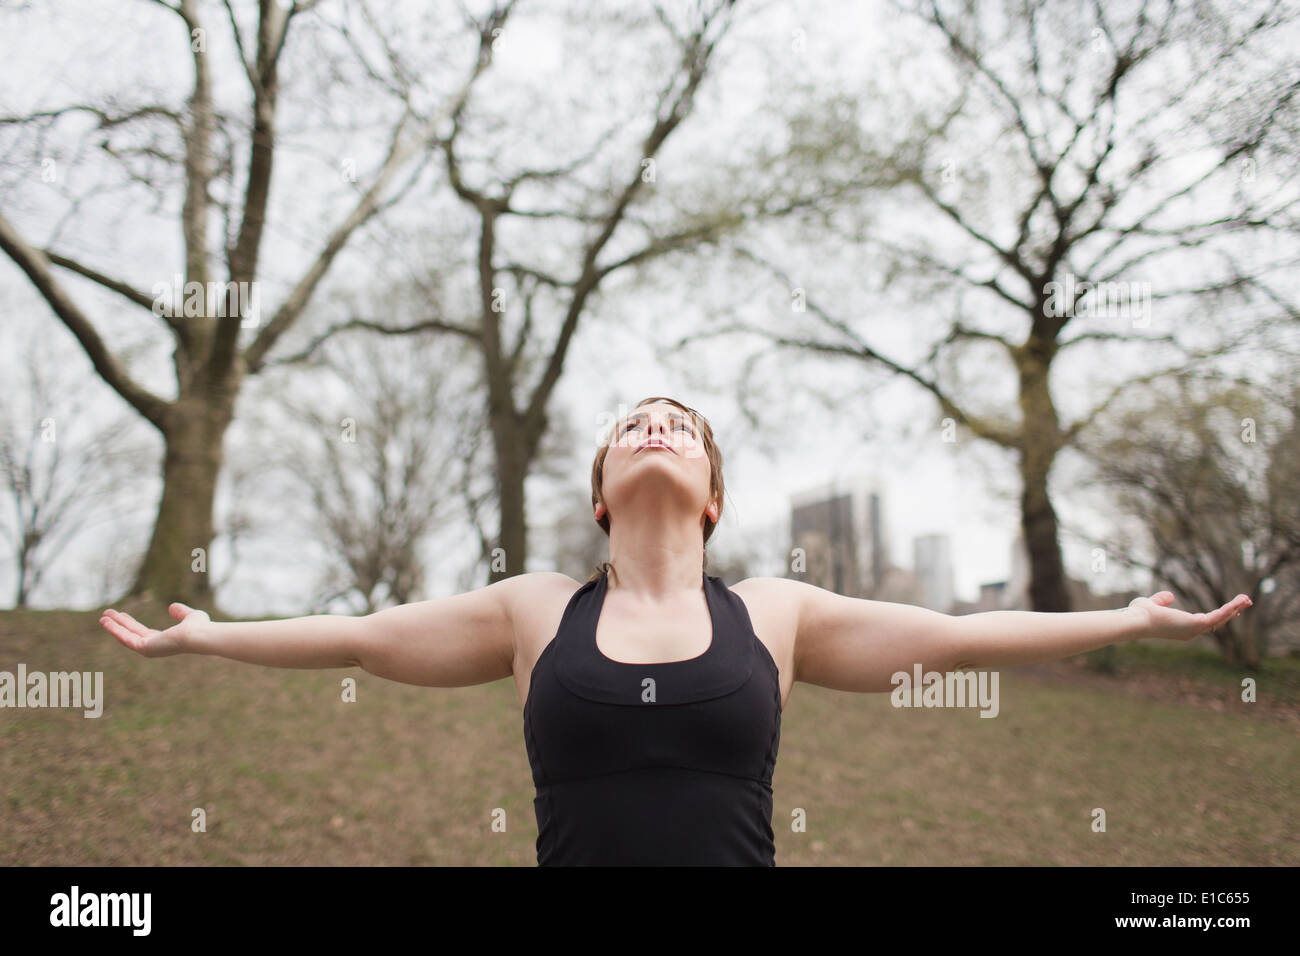 A young woman in Central Park, in a black leotard and leggings, doing yoga. - Stock Image